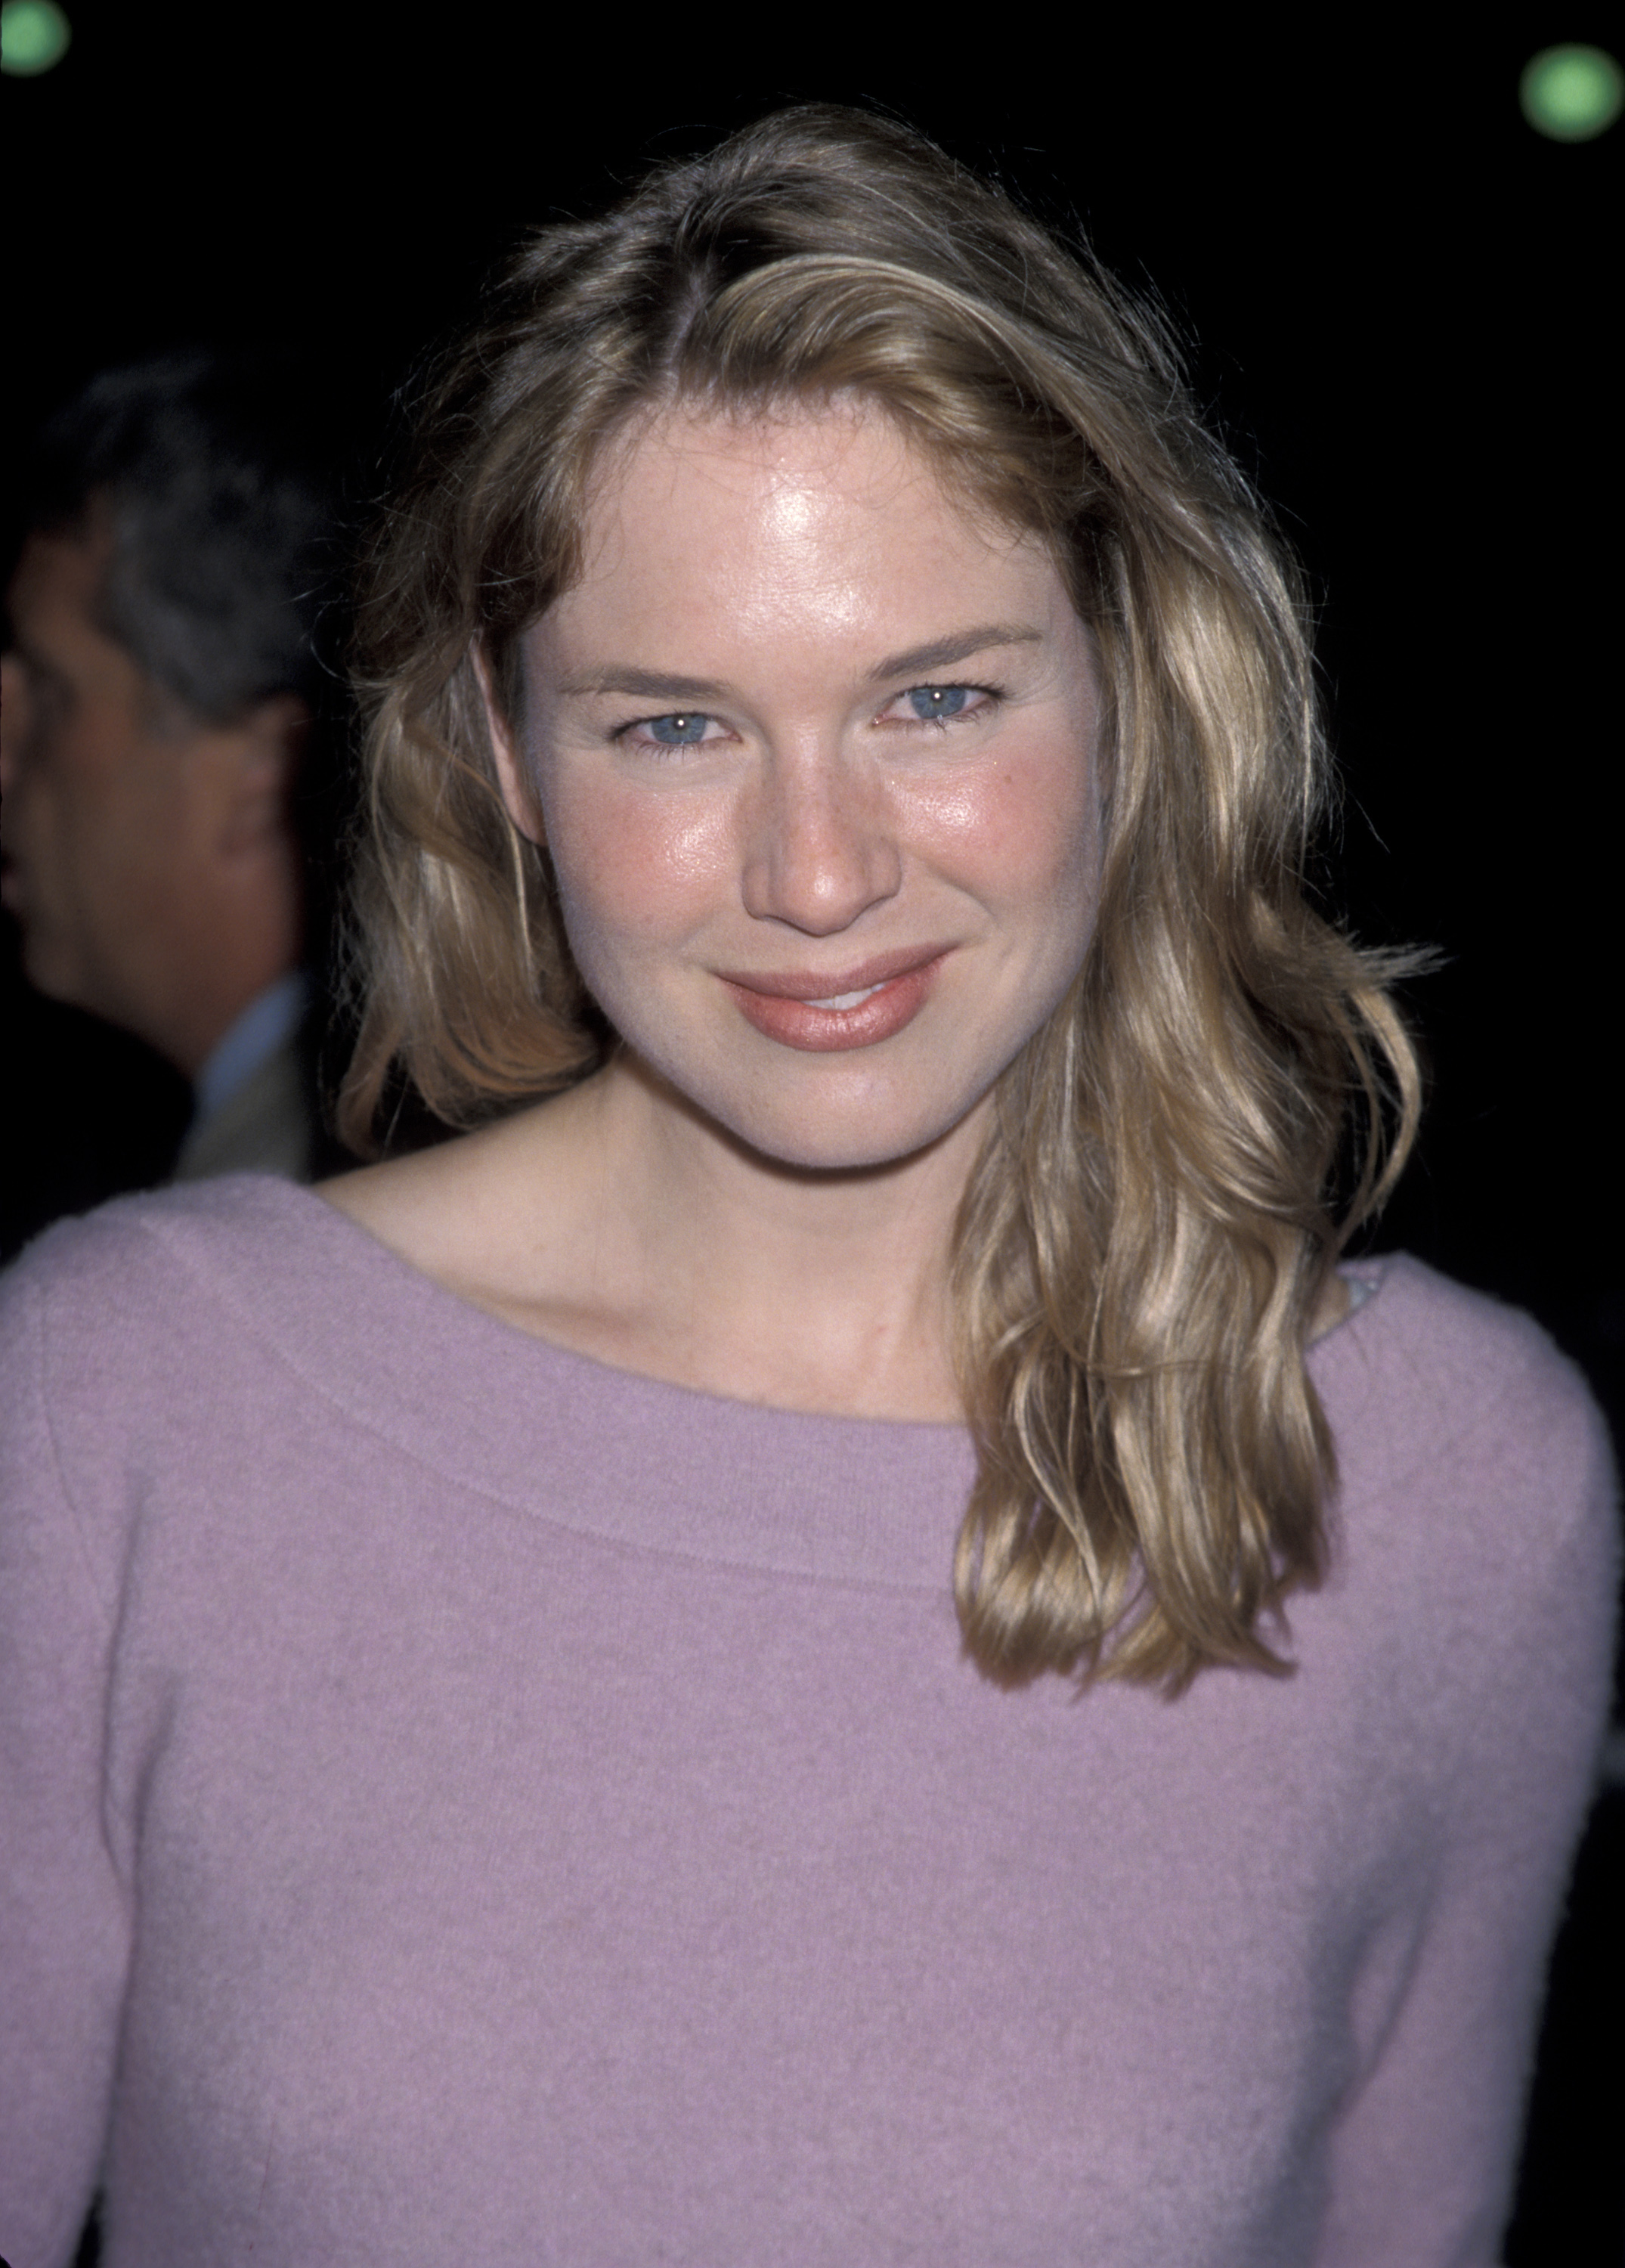 """<p>It's been over 20 years since Renée Zellweger had us at """"Hello"""" and much has changed for the actress since her breakout role in 1996's<em>Jerry Maguire.</em></p> <p>Despite adding several hit movies and an Oscar in 2004 for her role in the civil-war drama,<em> Cold Mountain,</em> to her CV, it's been the 48-year-old's physical appearance that has courted the most controversy.</p> <p>Zellweger's flawless complexion and plump lips have been a constant source of speculation that the actress may have resorted to anti-aging procedures to maintain a youthful appearance.</p> <p>But that doesn't seem to bother the <em>Chicago</em> star who revealed to the <em><a href=""""https://www.hollywoodreporter.com/features/renee-zellweger-interview-gender-inequality-921947"""" target=""""_blank"""" draggable=""""false"""">Hollywood Reporter</a></em><strong><em></em> </strong>last year, after a six-year hiatus from acting, that she doesn't view the aging process in a negative light.<br /> <br /> """"I've never seen the maturation of a woman as a negative thing,"""" Zellweger said. </p> <p>""""I've never seen a woman stepping into her more powerful self as a negative. But this conversation perpetuates the problem. Why are we talking about how women look? Why do we value beauty over contribution?""""</p> <p>Click through to see the beauty evolution of Renée Zellweger.</p>"""